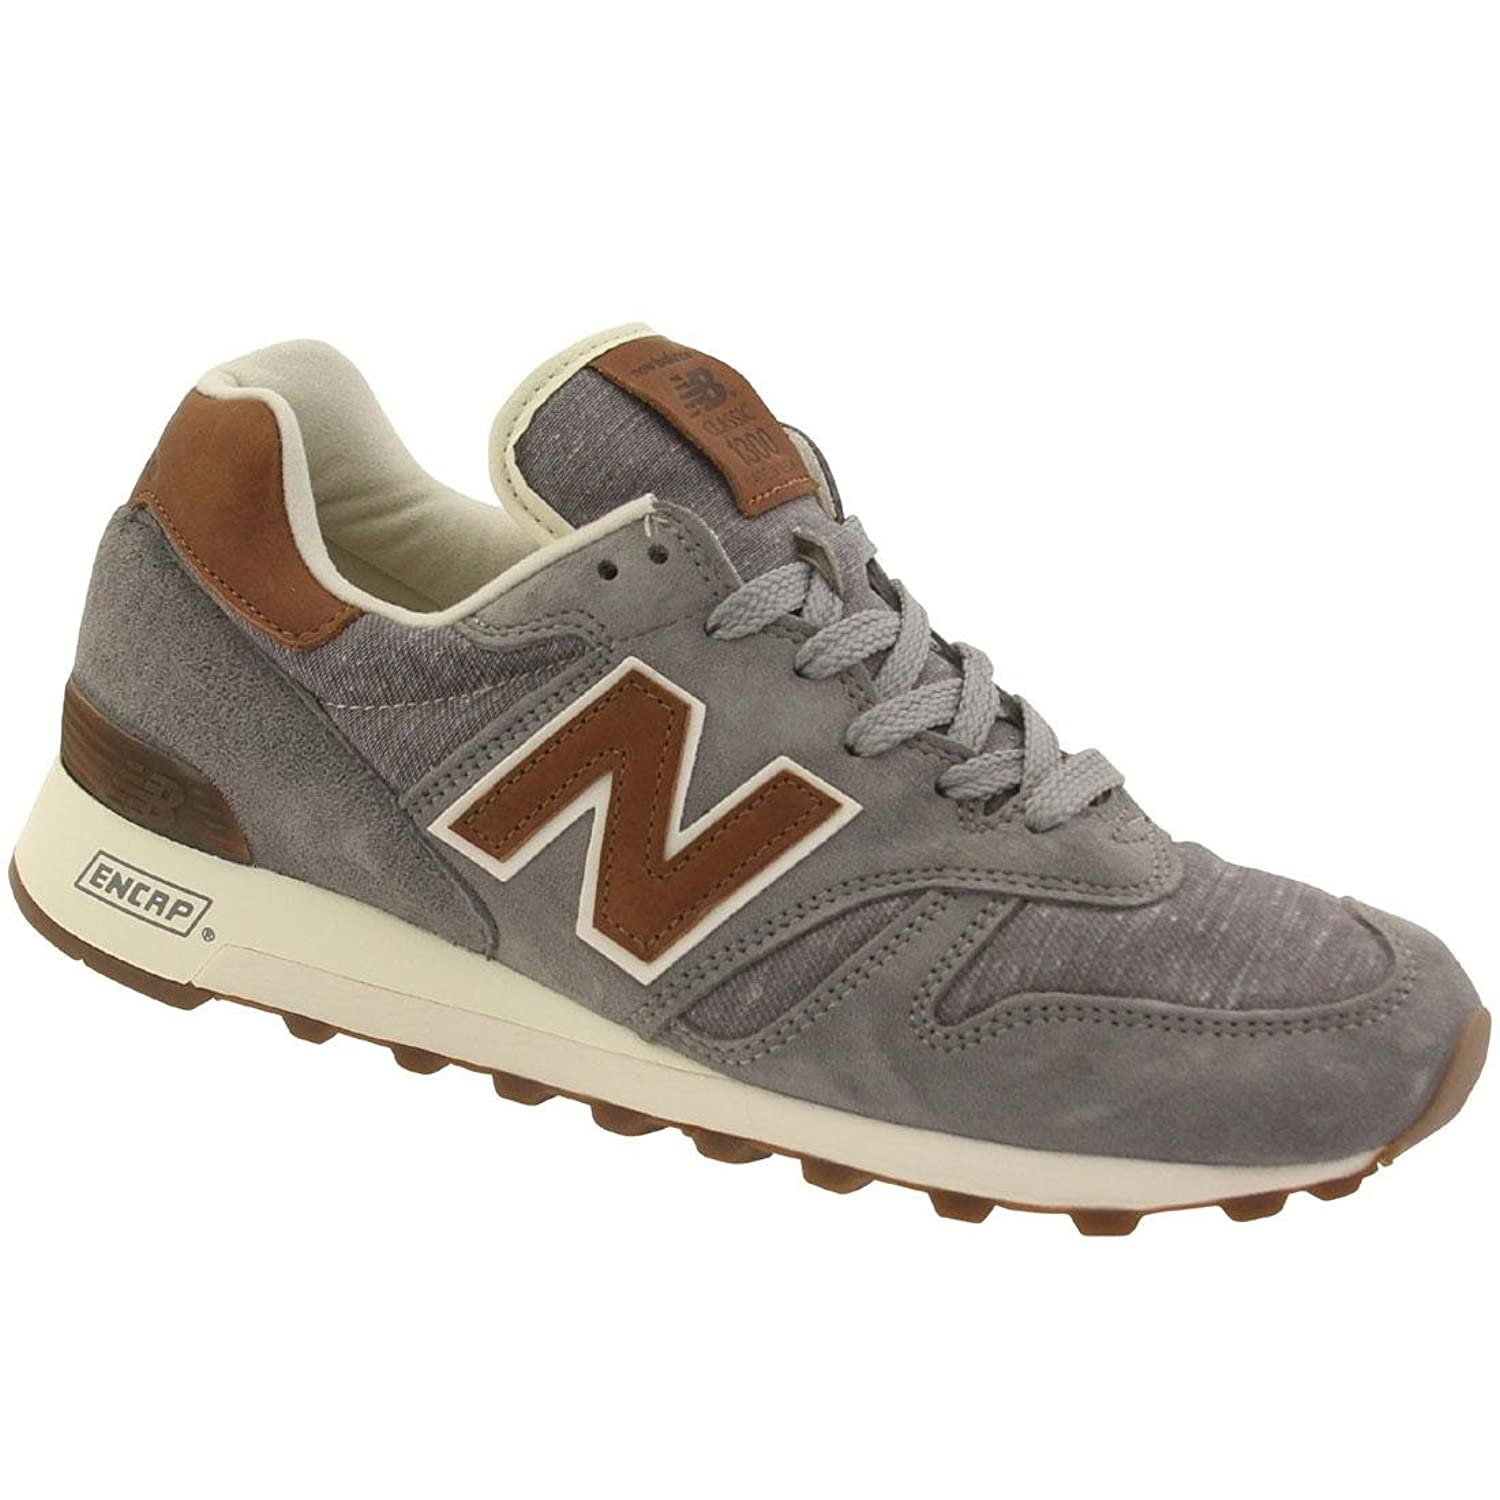 New Balance Men's Shoes 1300 America Undiscovered Sneaker